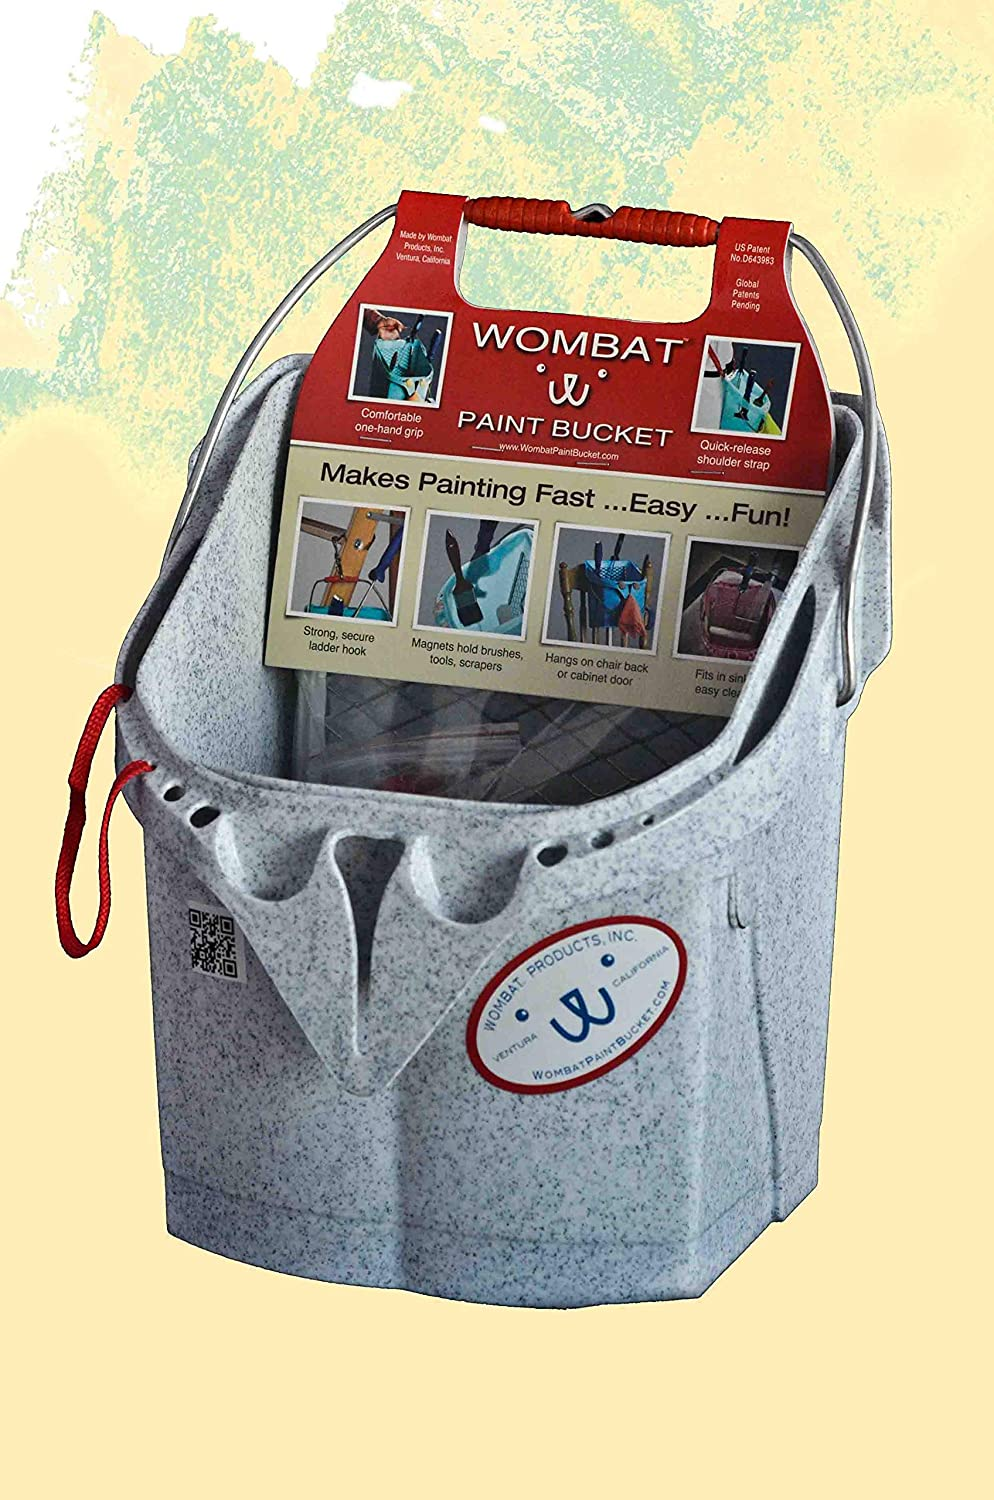 Wx13 in D WOMBAT PORTAPAINT 5016 Paint Tray,10 in